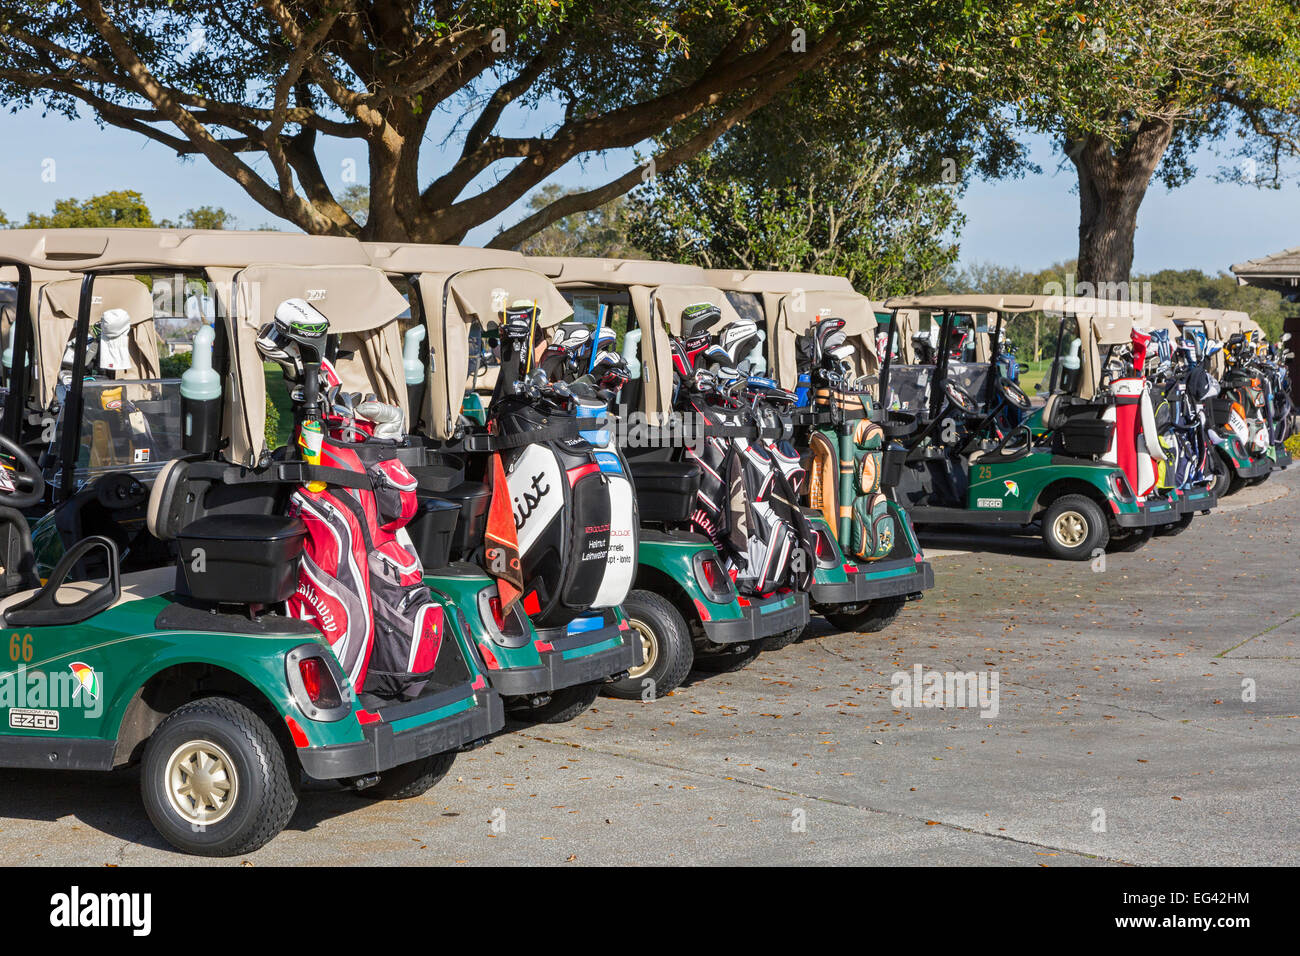 Golf buggies lined up with golf clubs at the first tee of Arnold Palmer's Bay Hill Golf Club, Orlando, Florida, - Stock Image